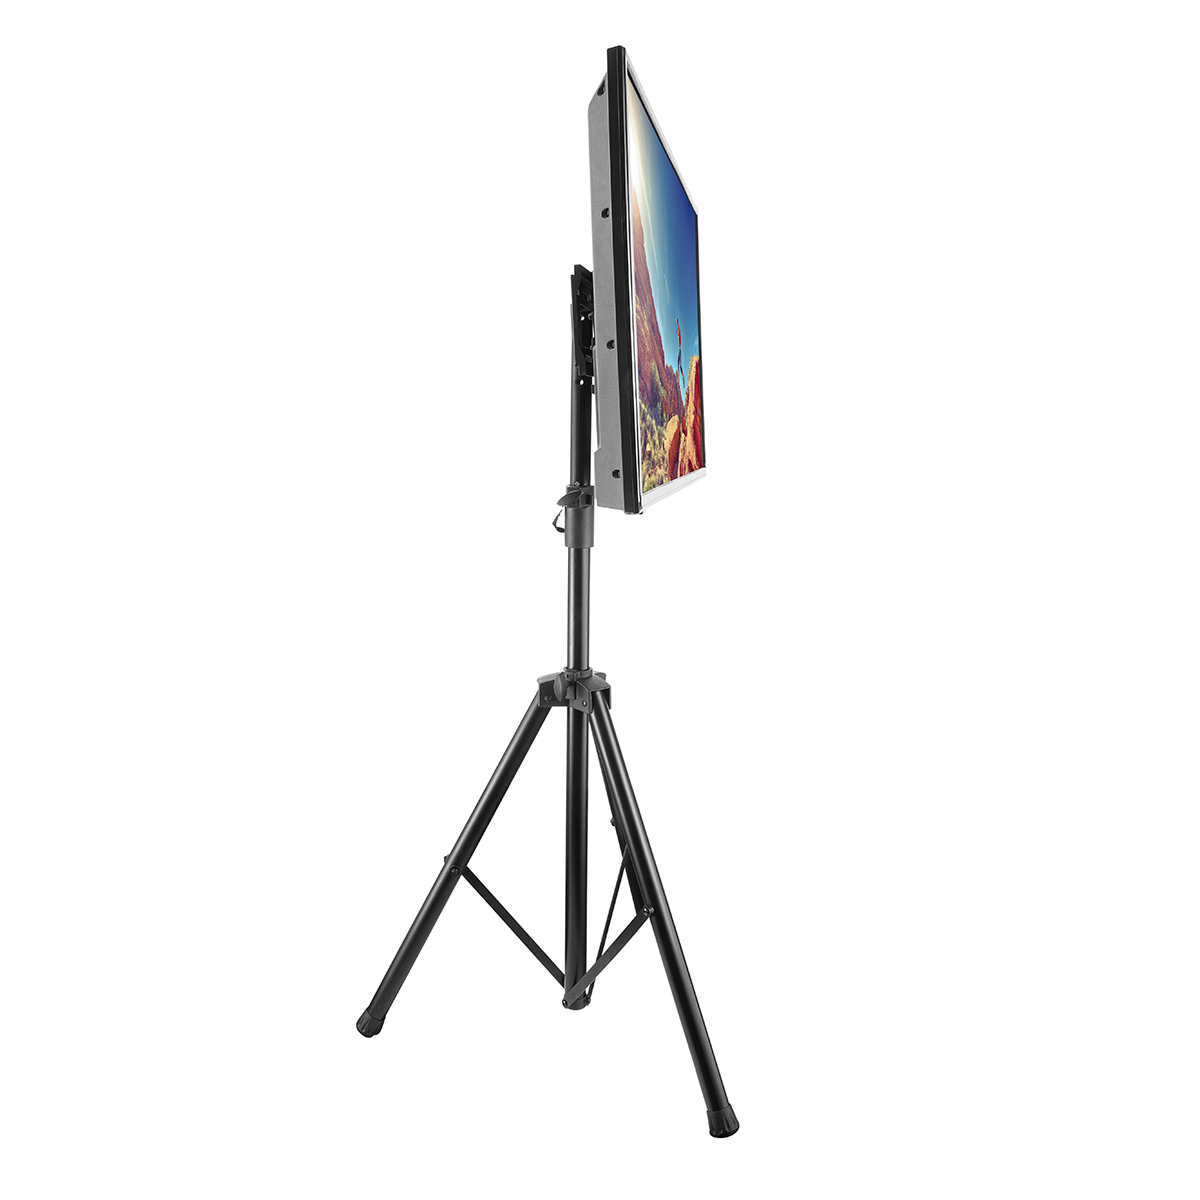 AVC-3770T TV stand with tripod base